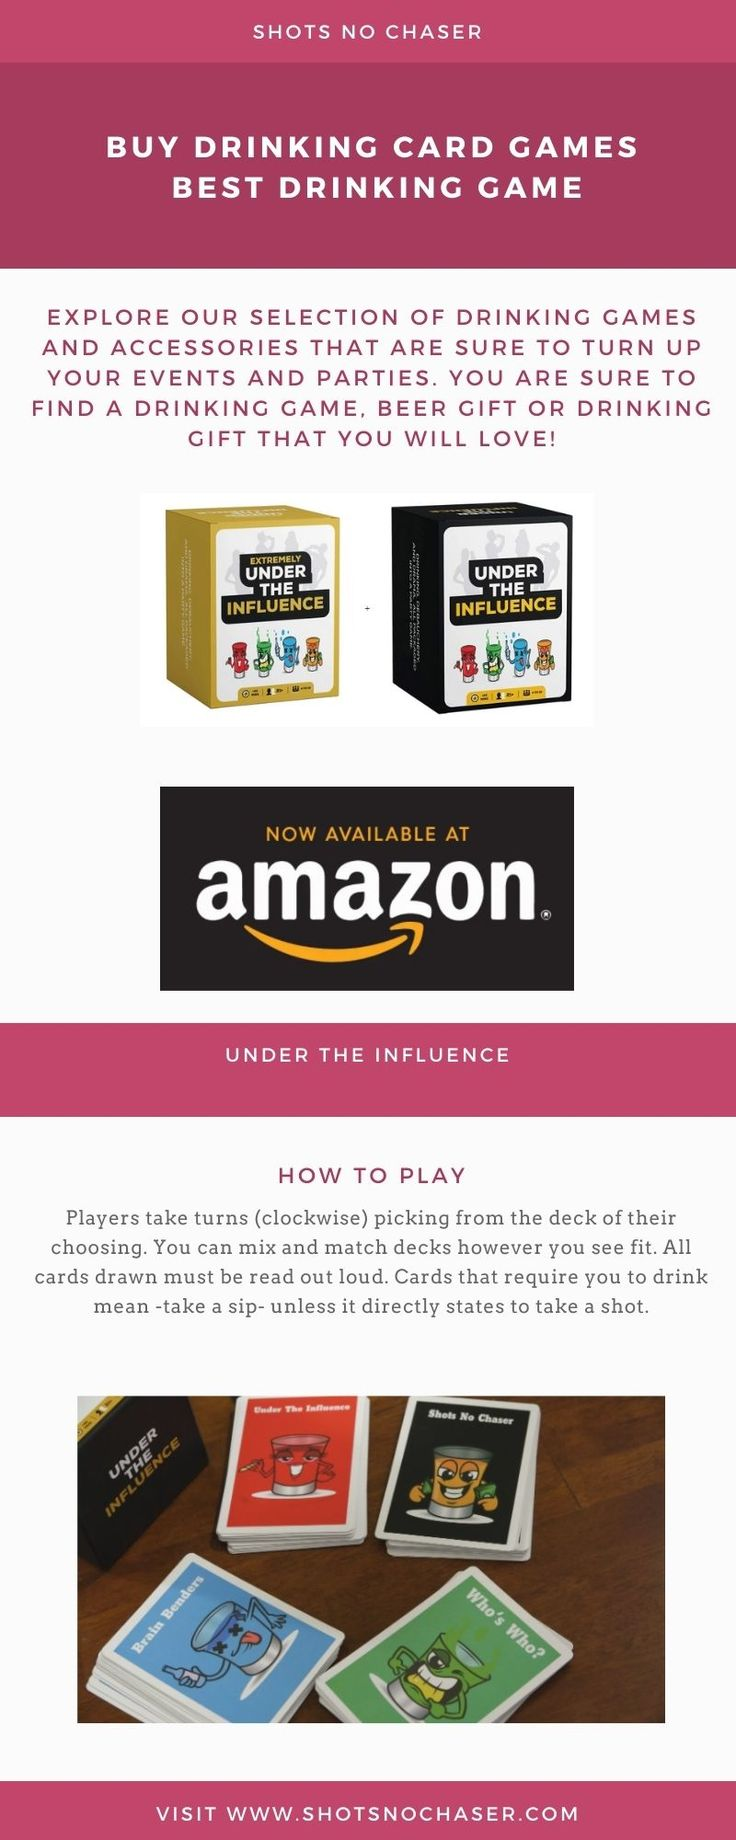 Buy drinking card games best drinking game